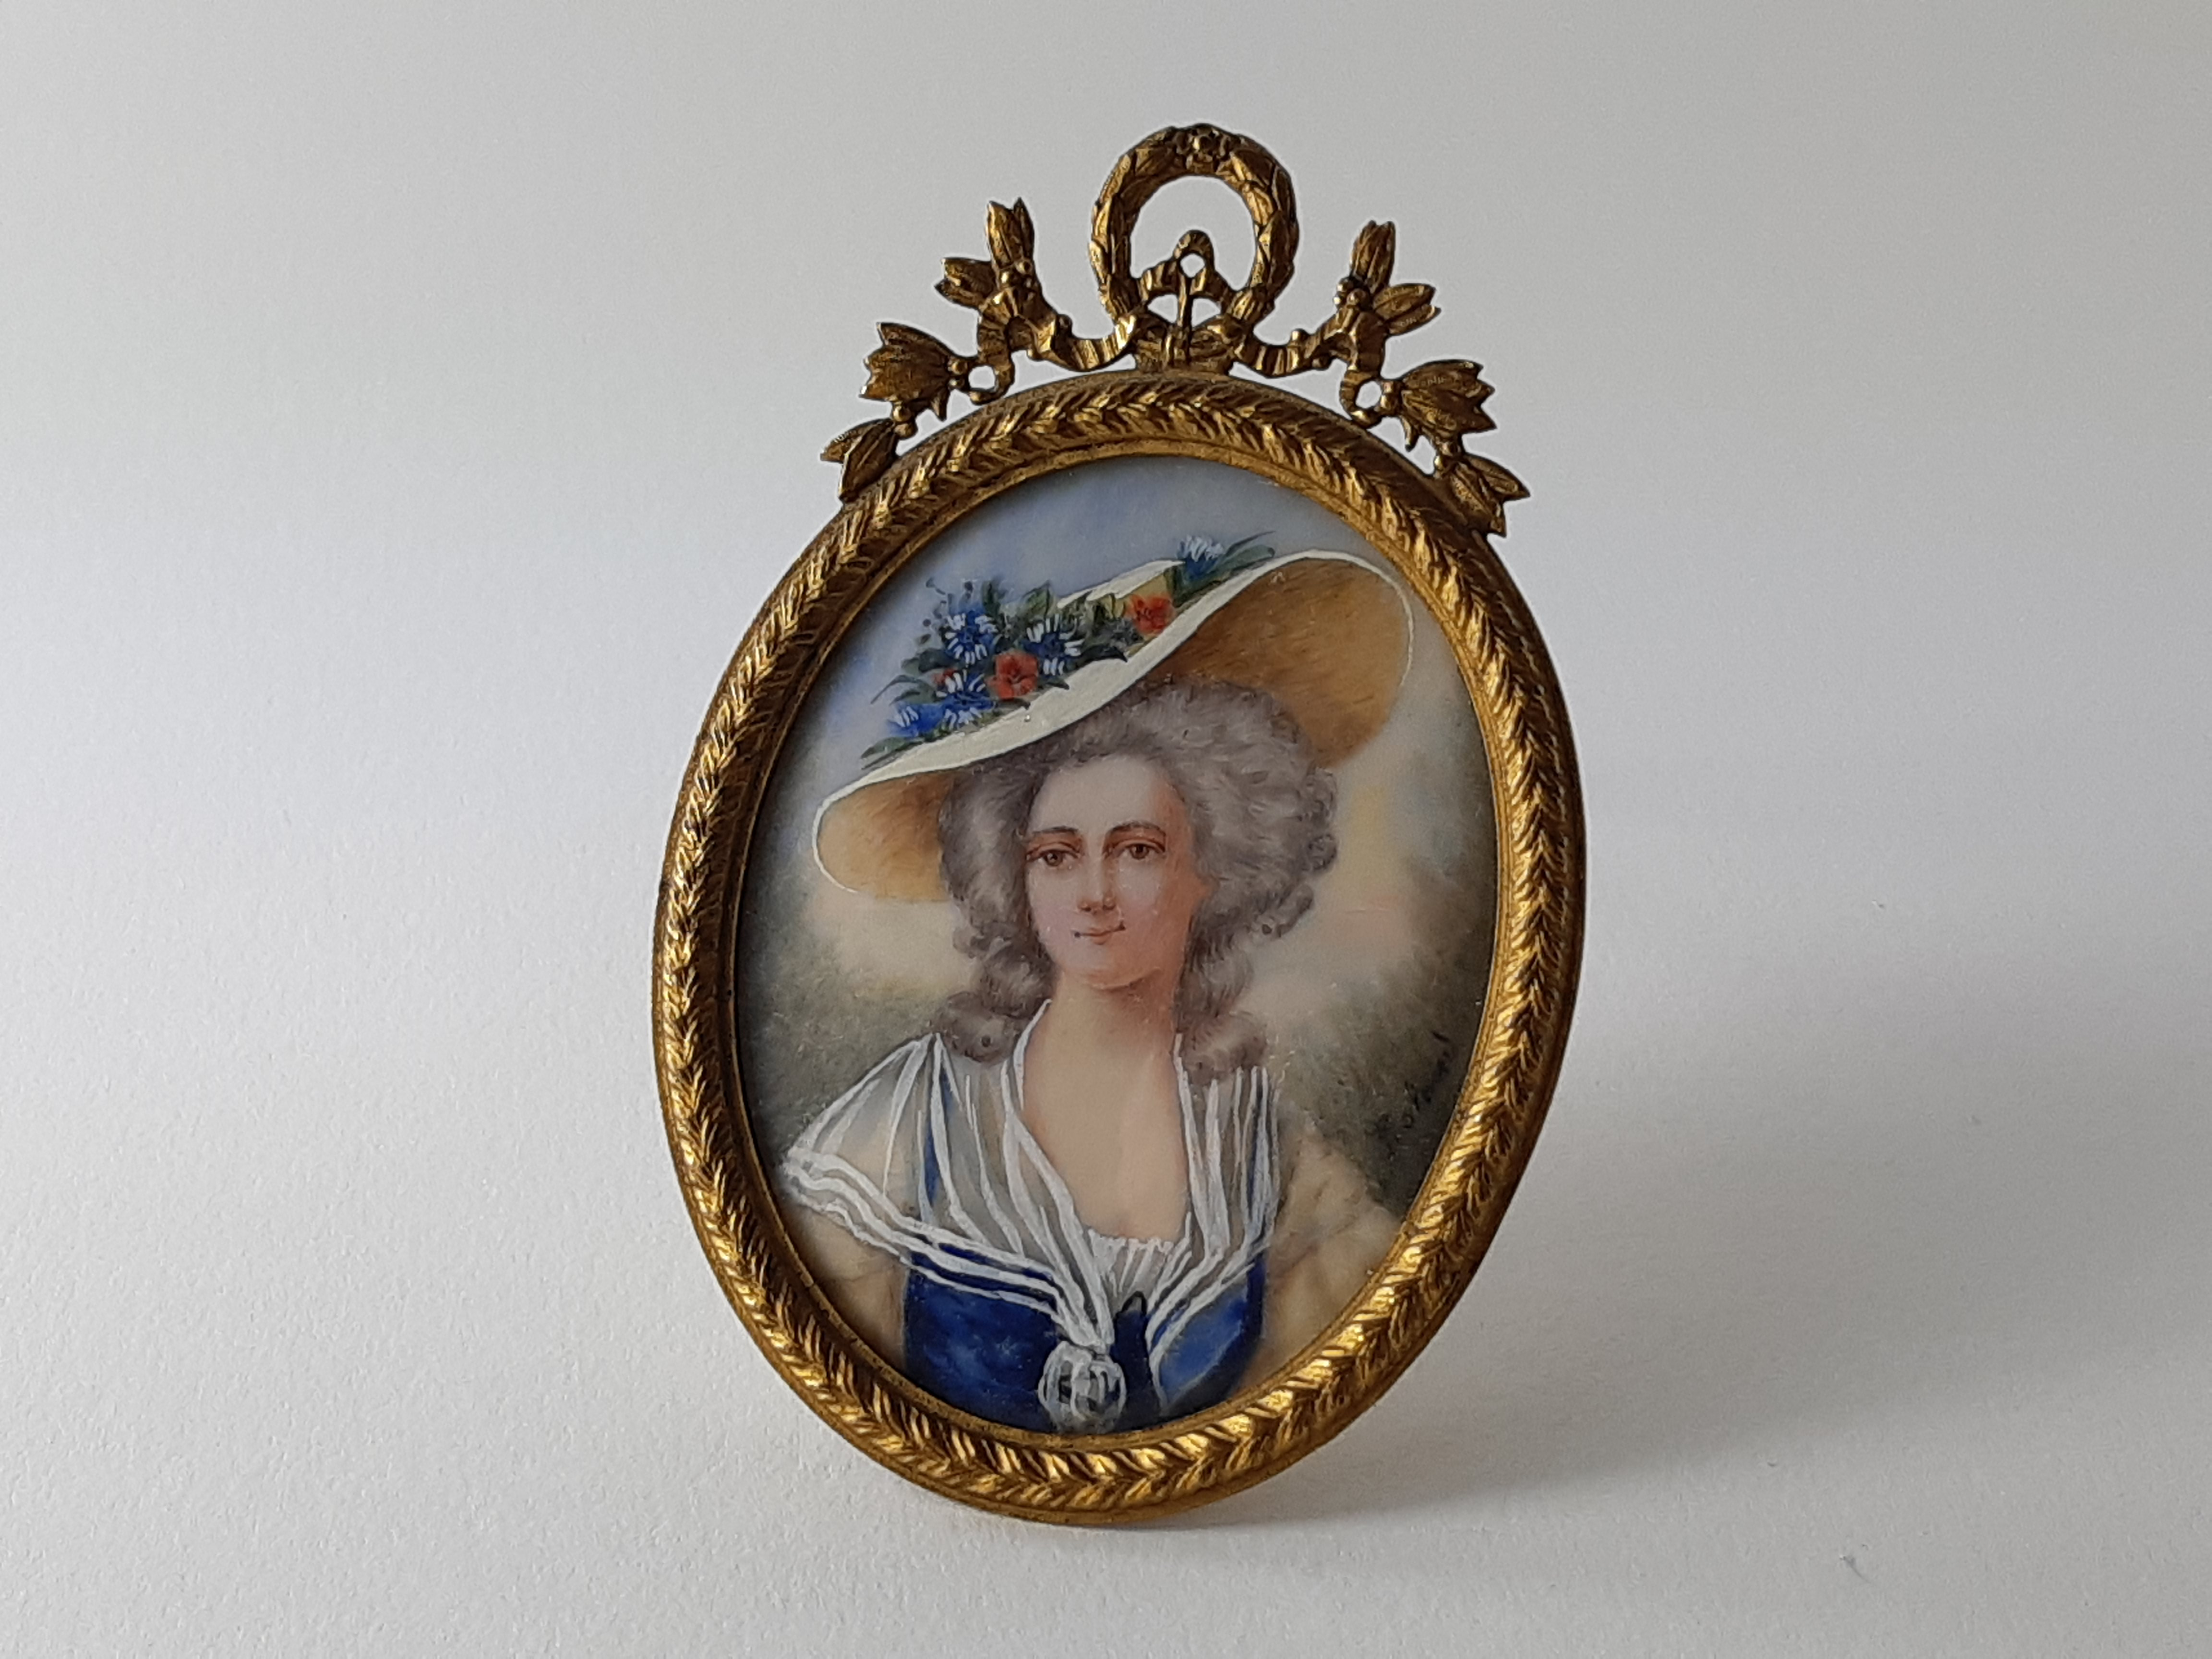 Miniature portrait of Gainsborough lady - watercolour on ivory